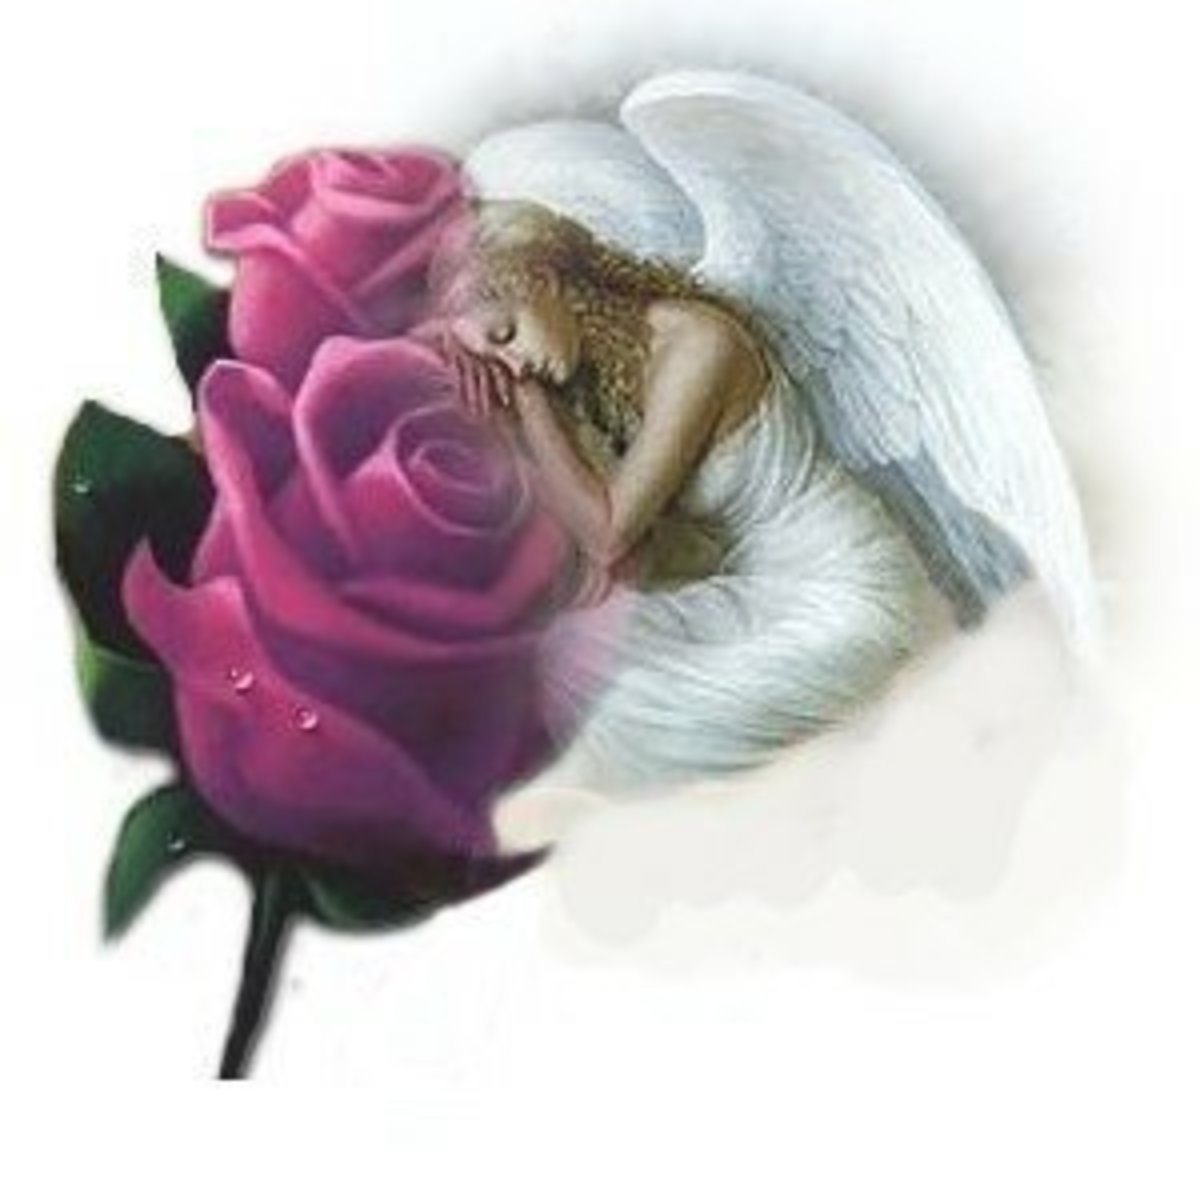 Myangel's Clipart » Religious » Angel in rose